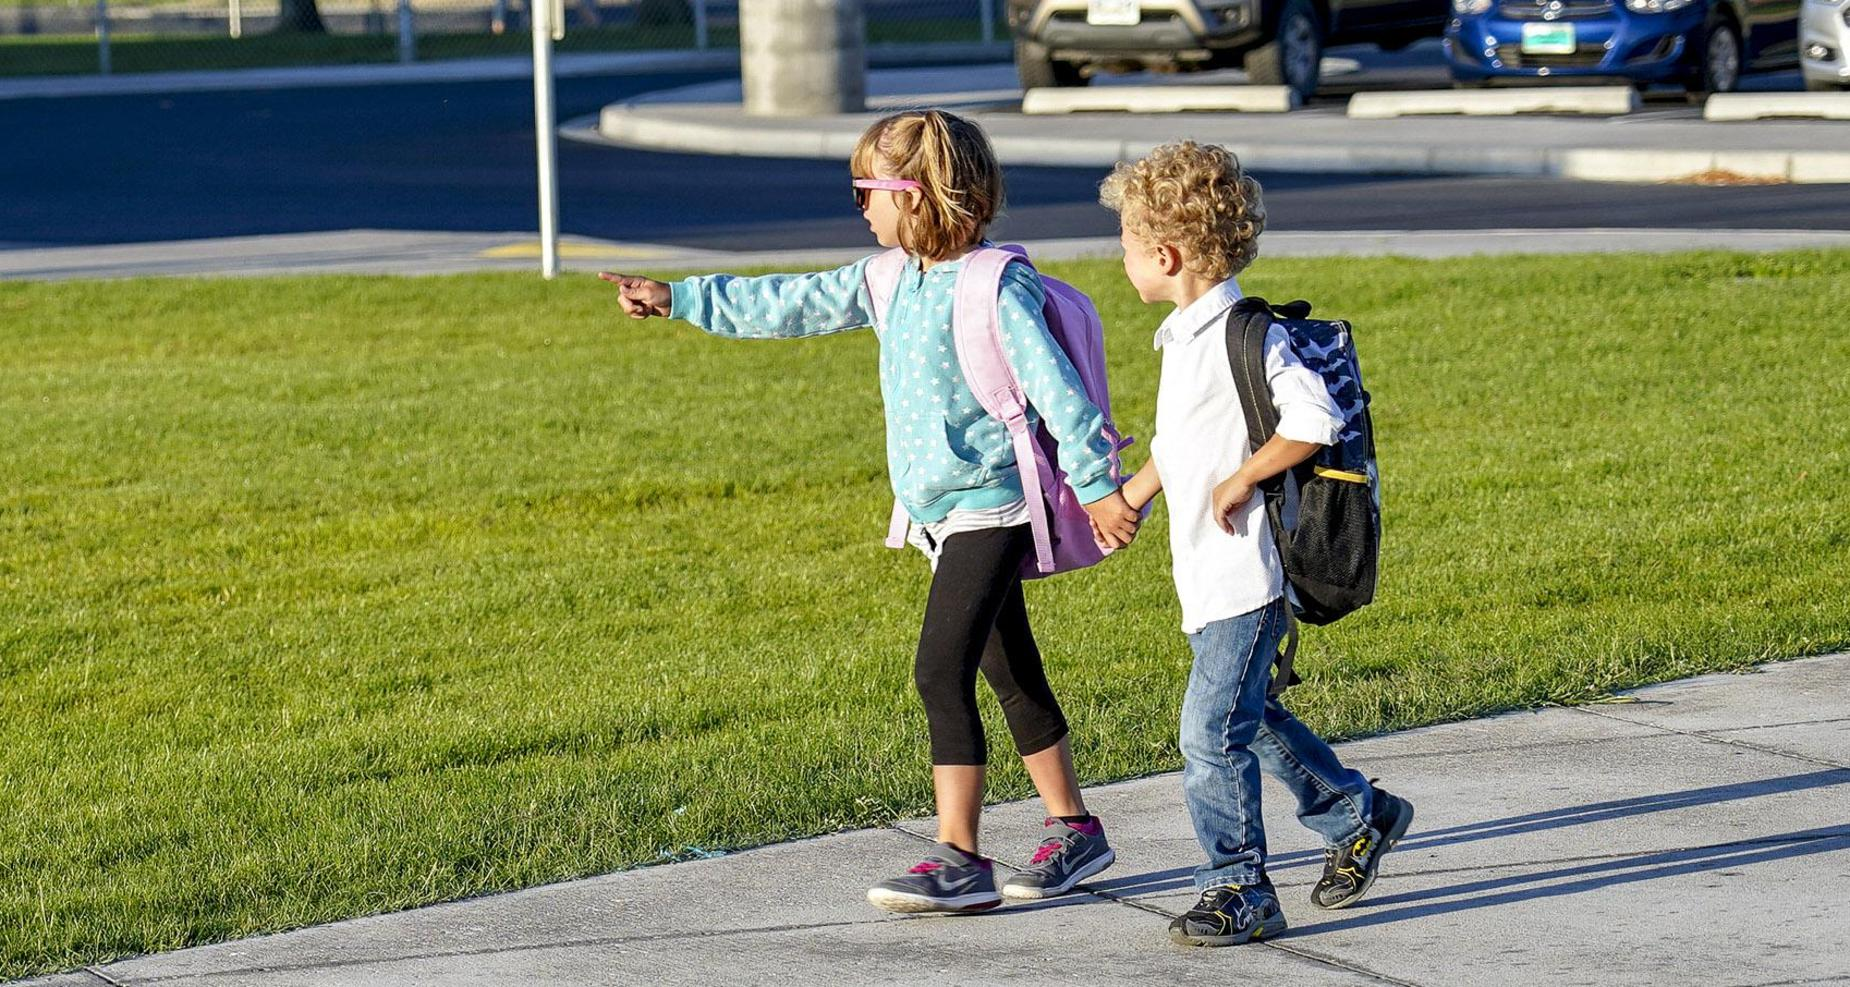 Siblings walking to school together holding hands.